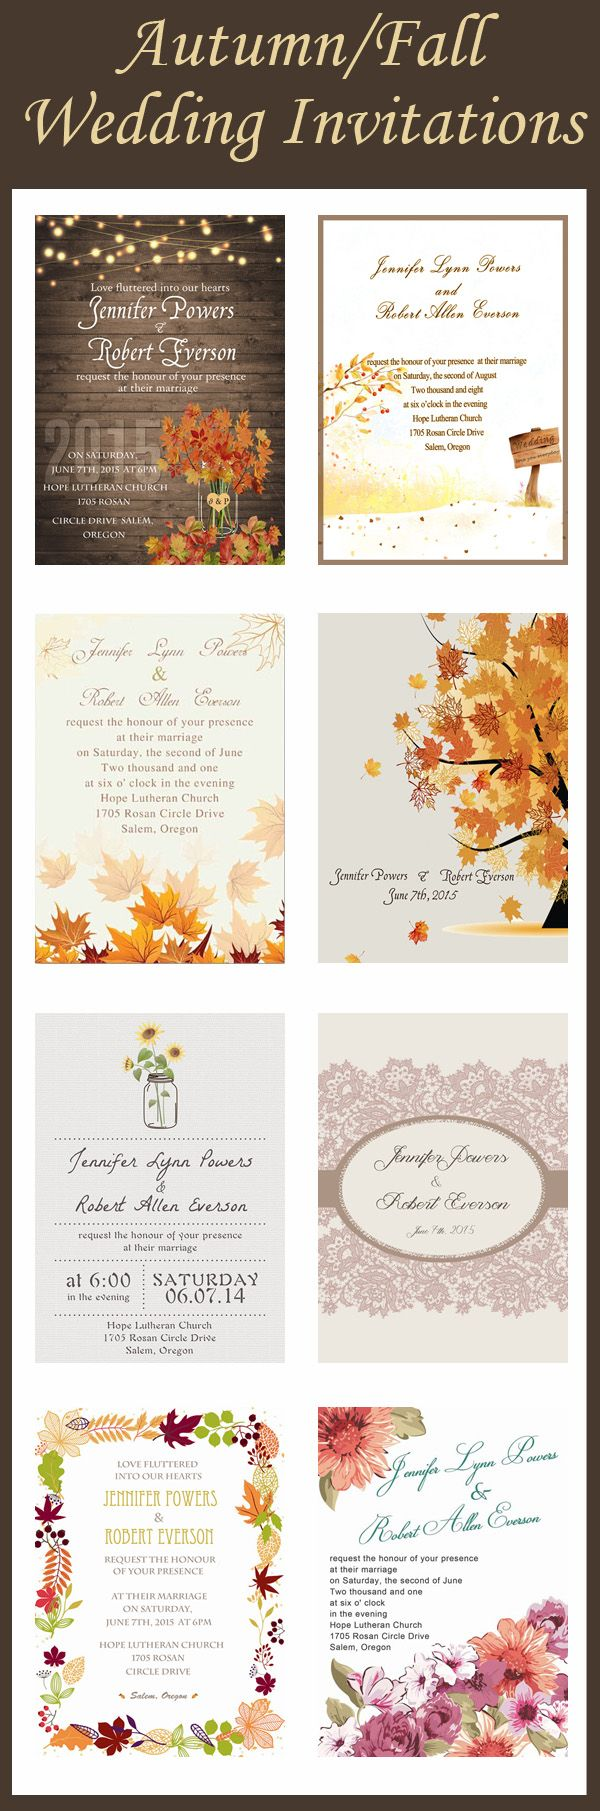 stylish rustic fall wedding invitations for autumn wedding ideas